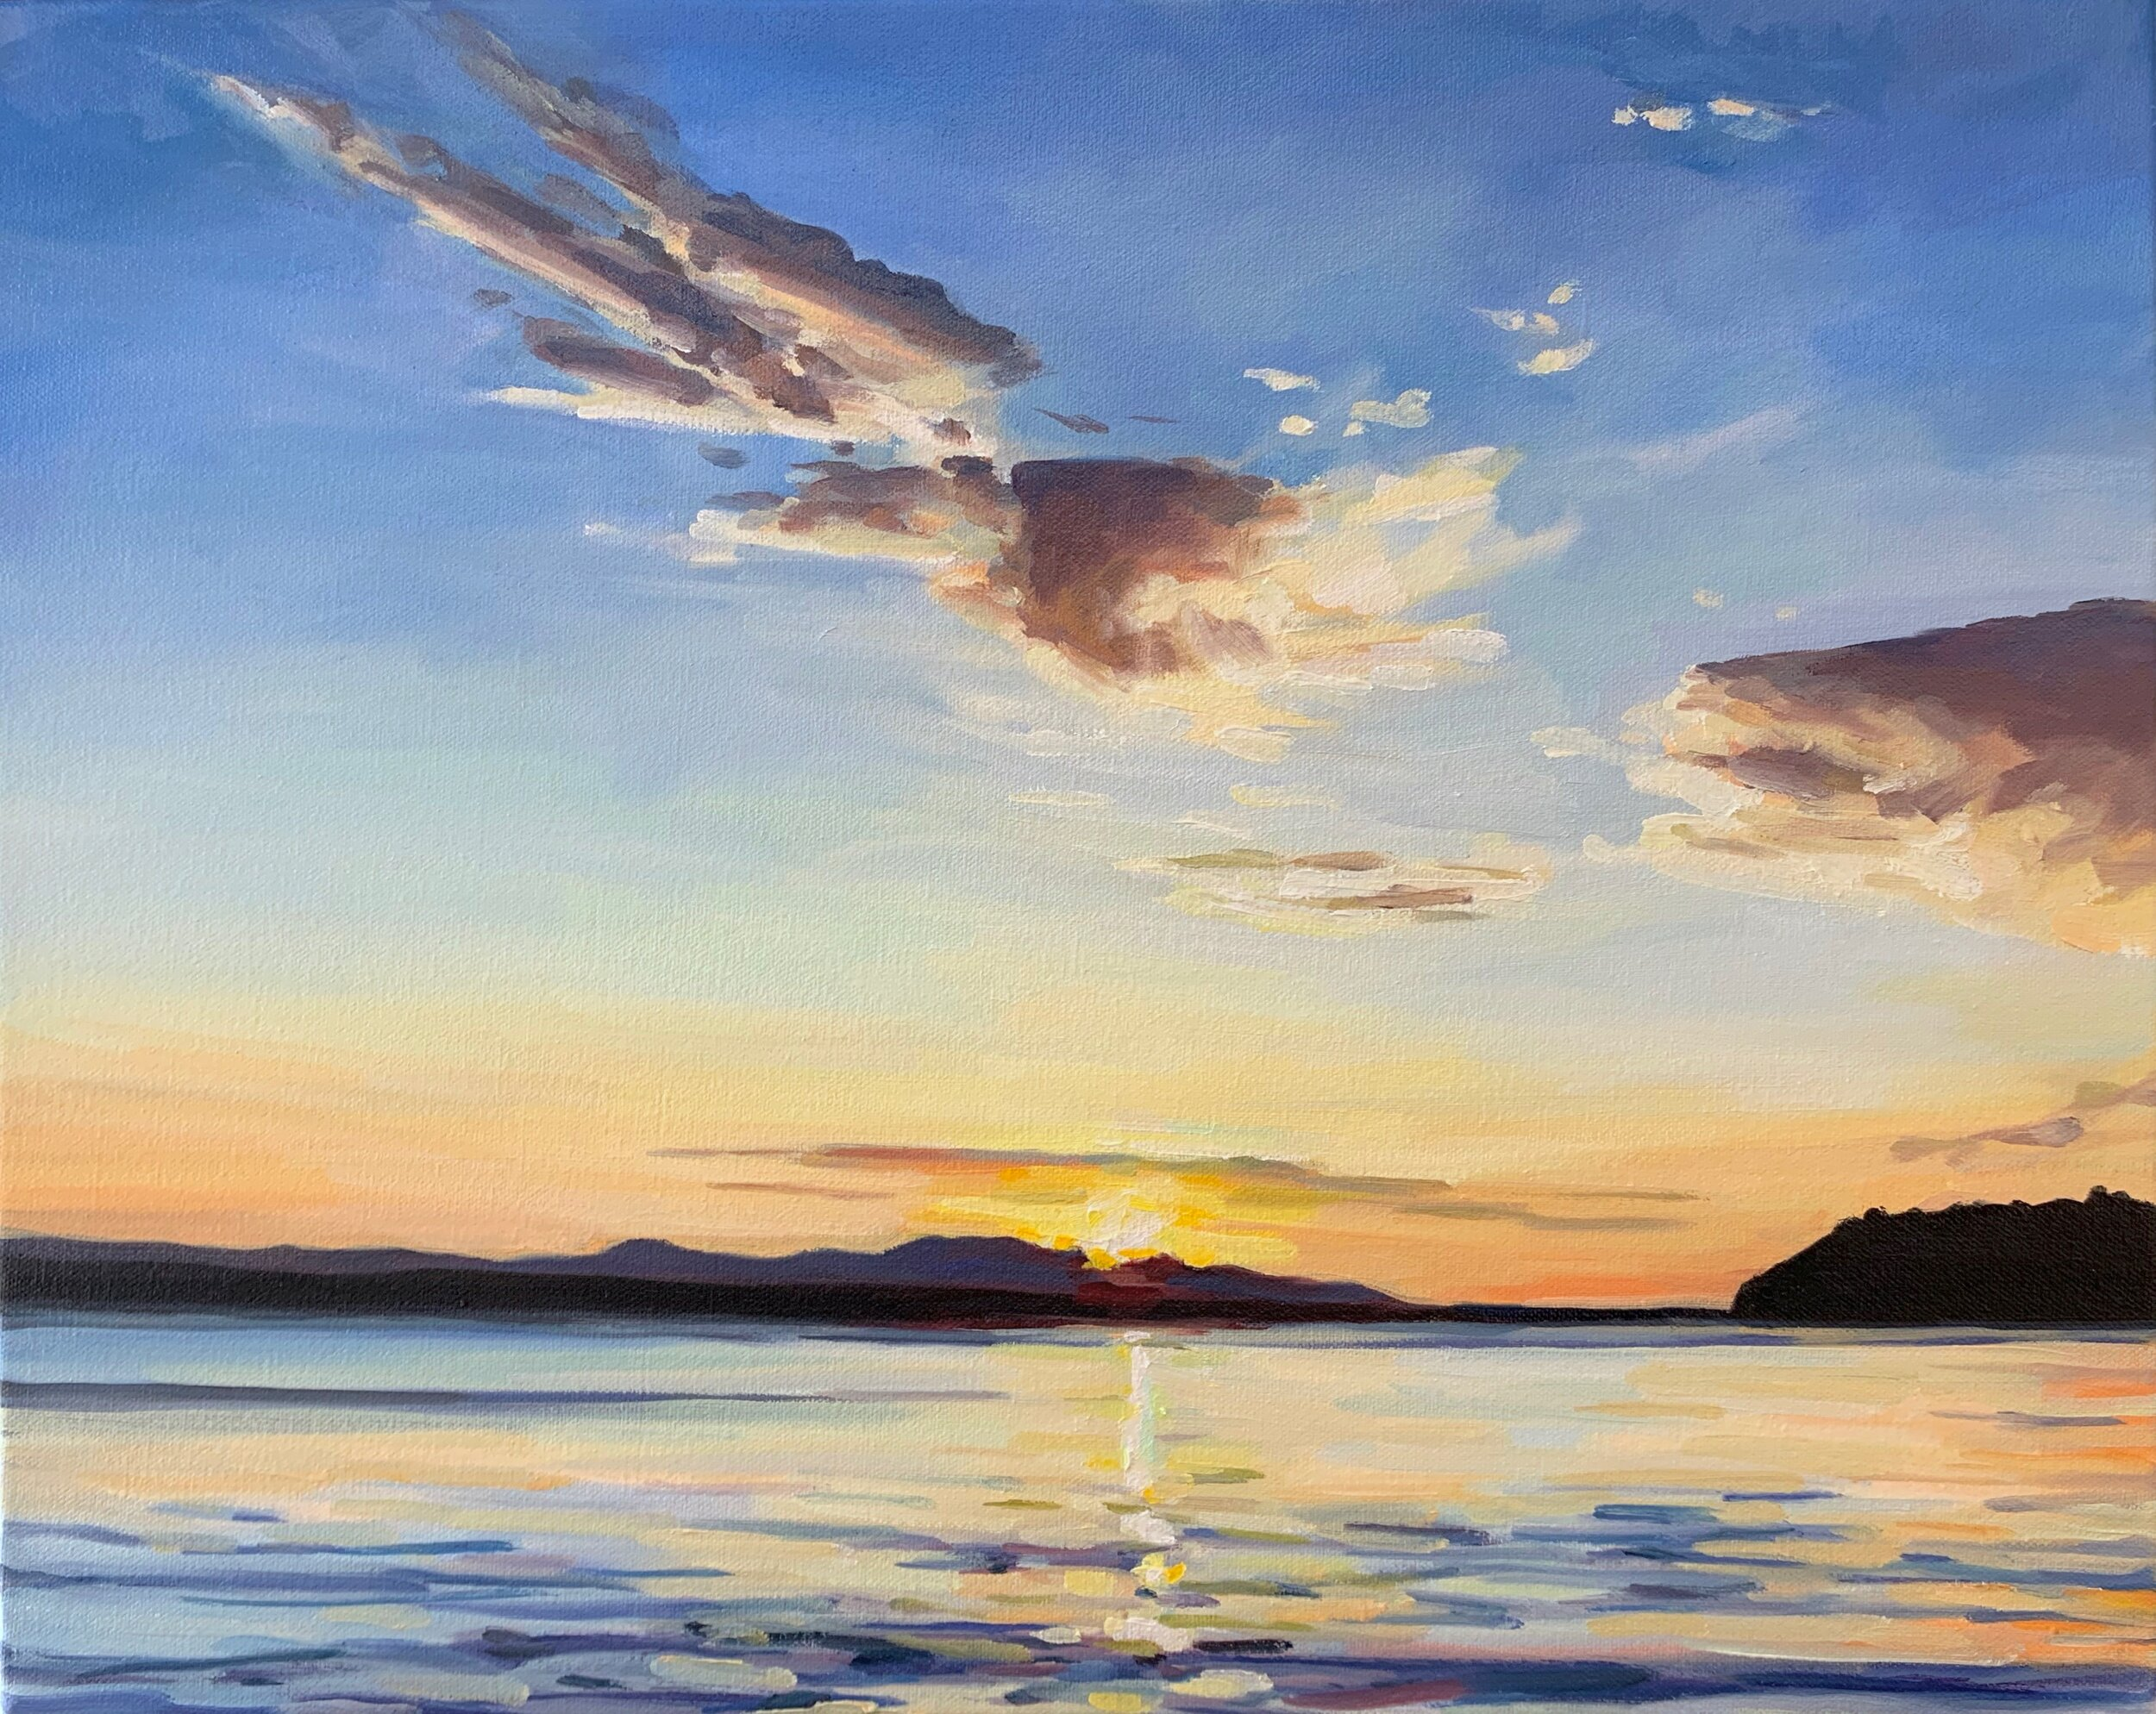 """'Seahurst Sunset'  2019  20"""" x 16""""  water soluble oil on canvas  sold"""